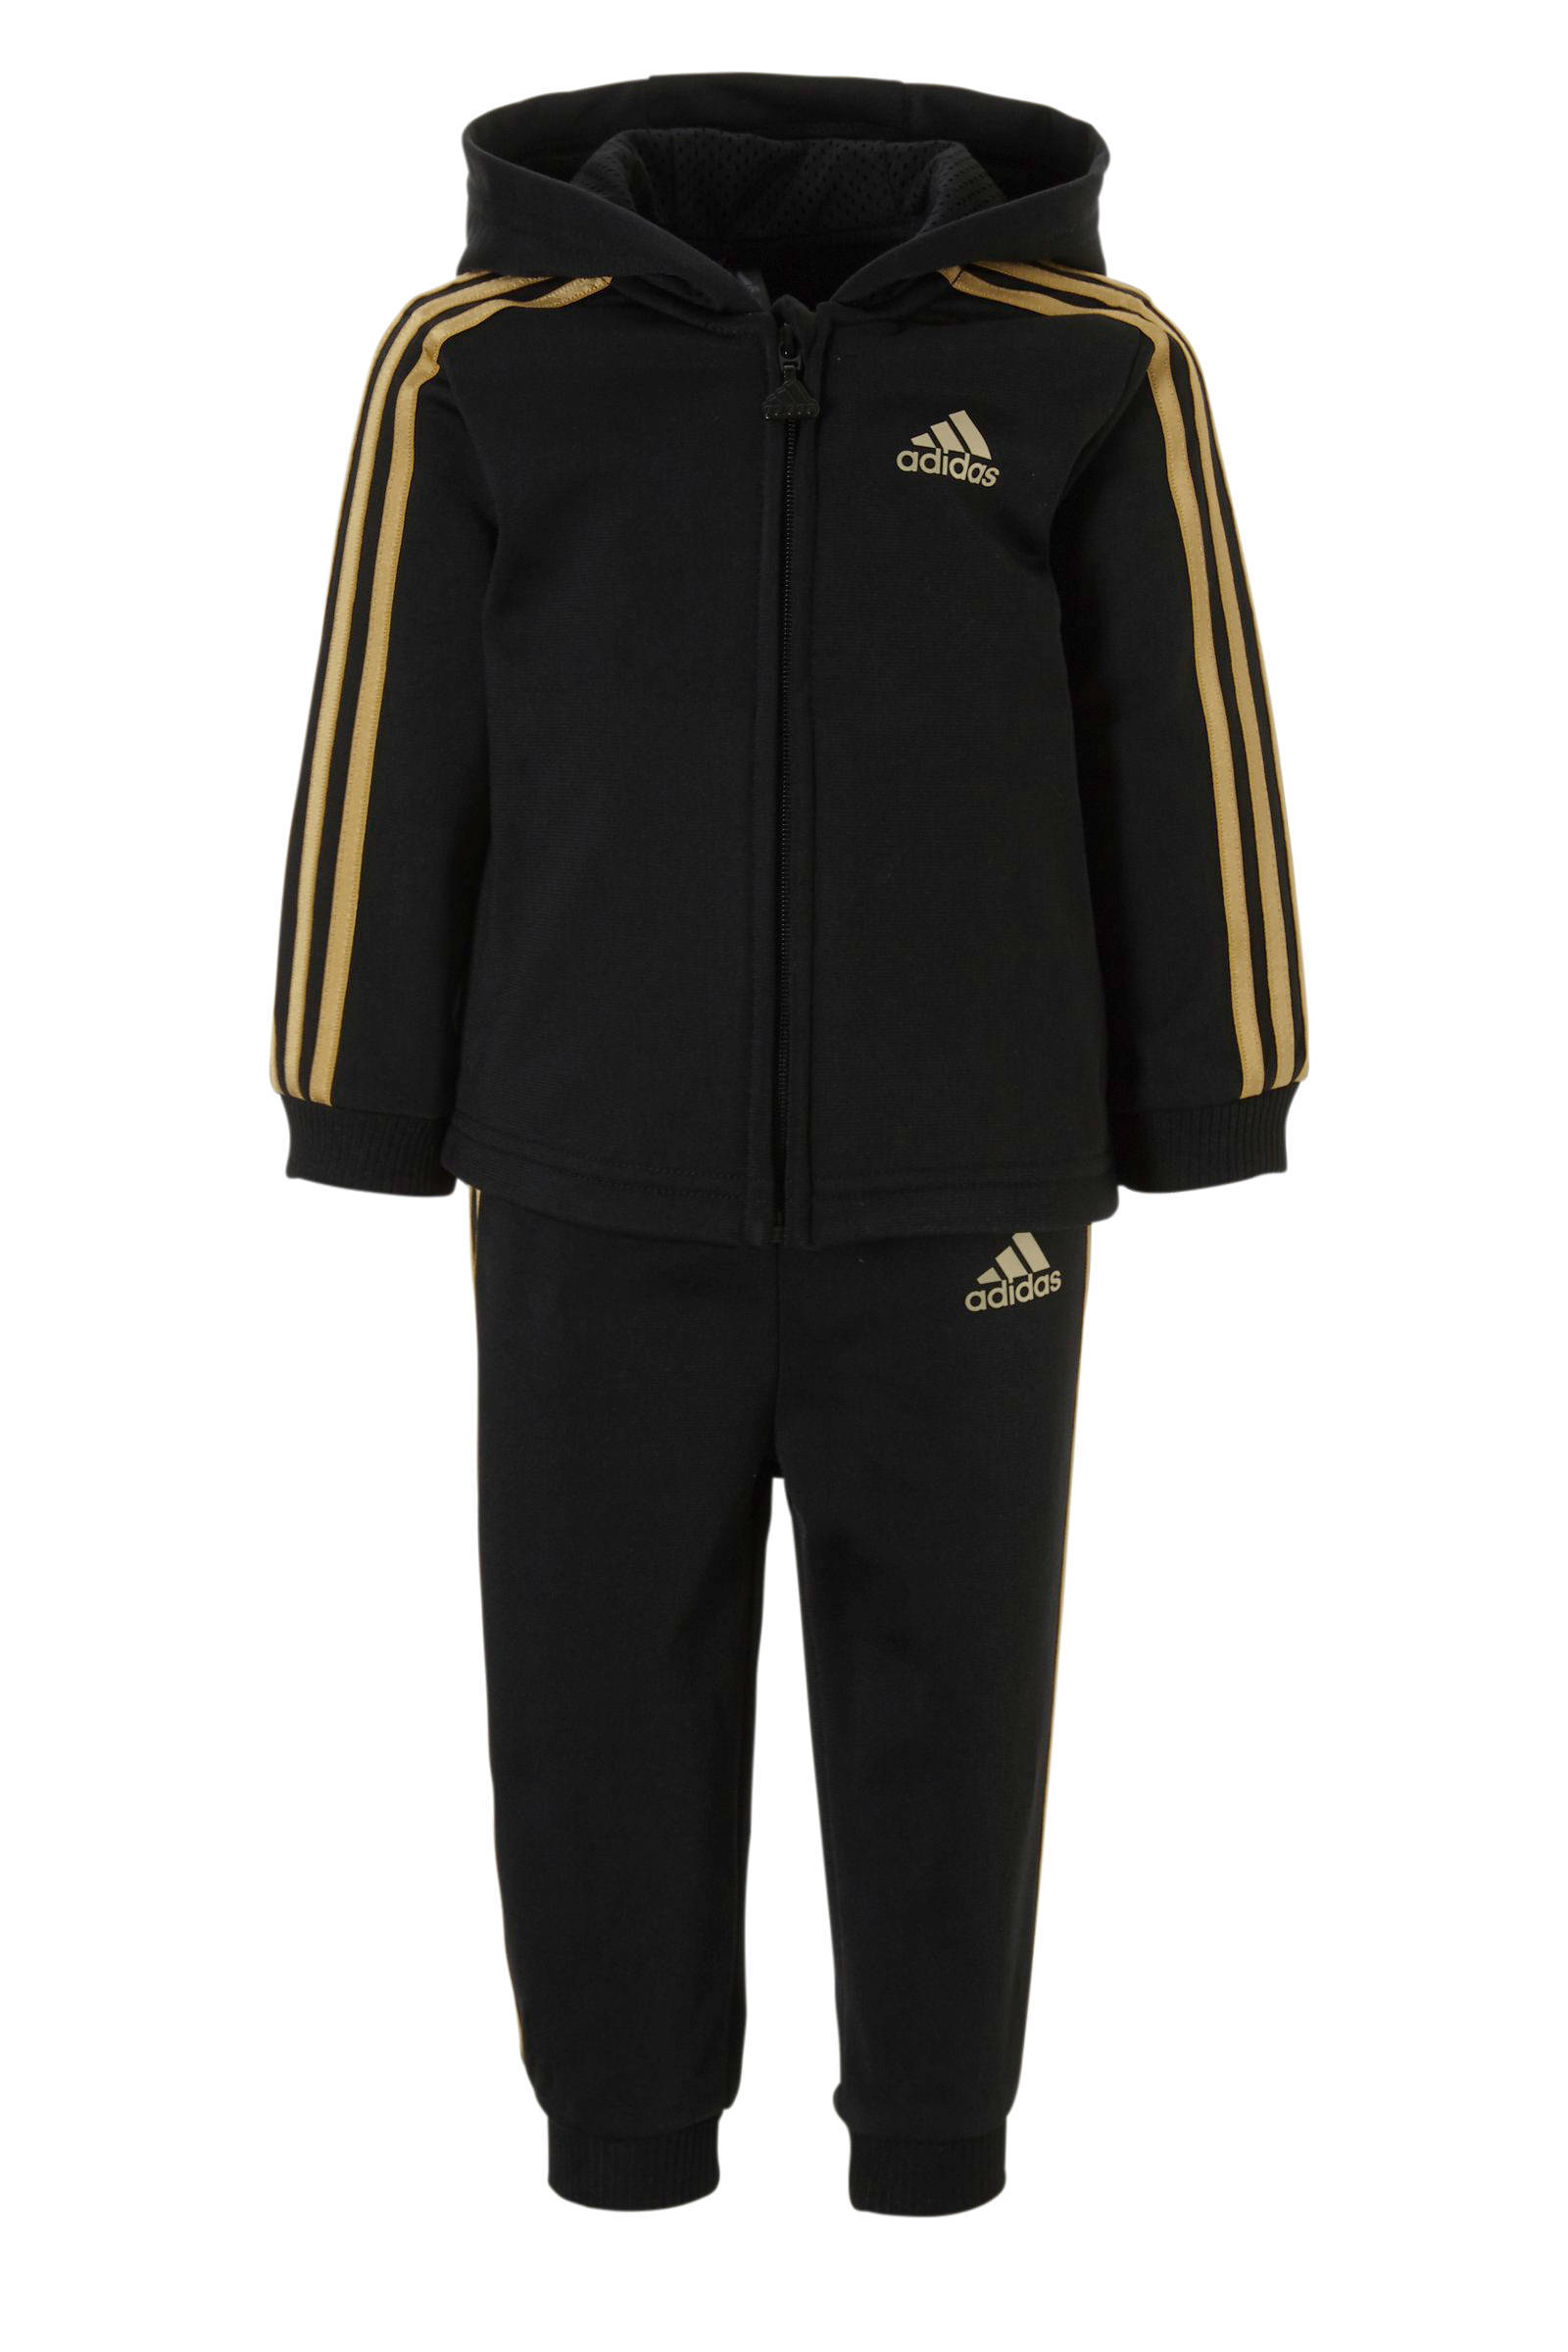 adidas Performance performance trainingspak zwart | wehkamp